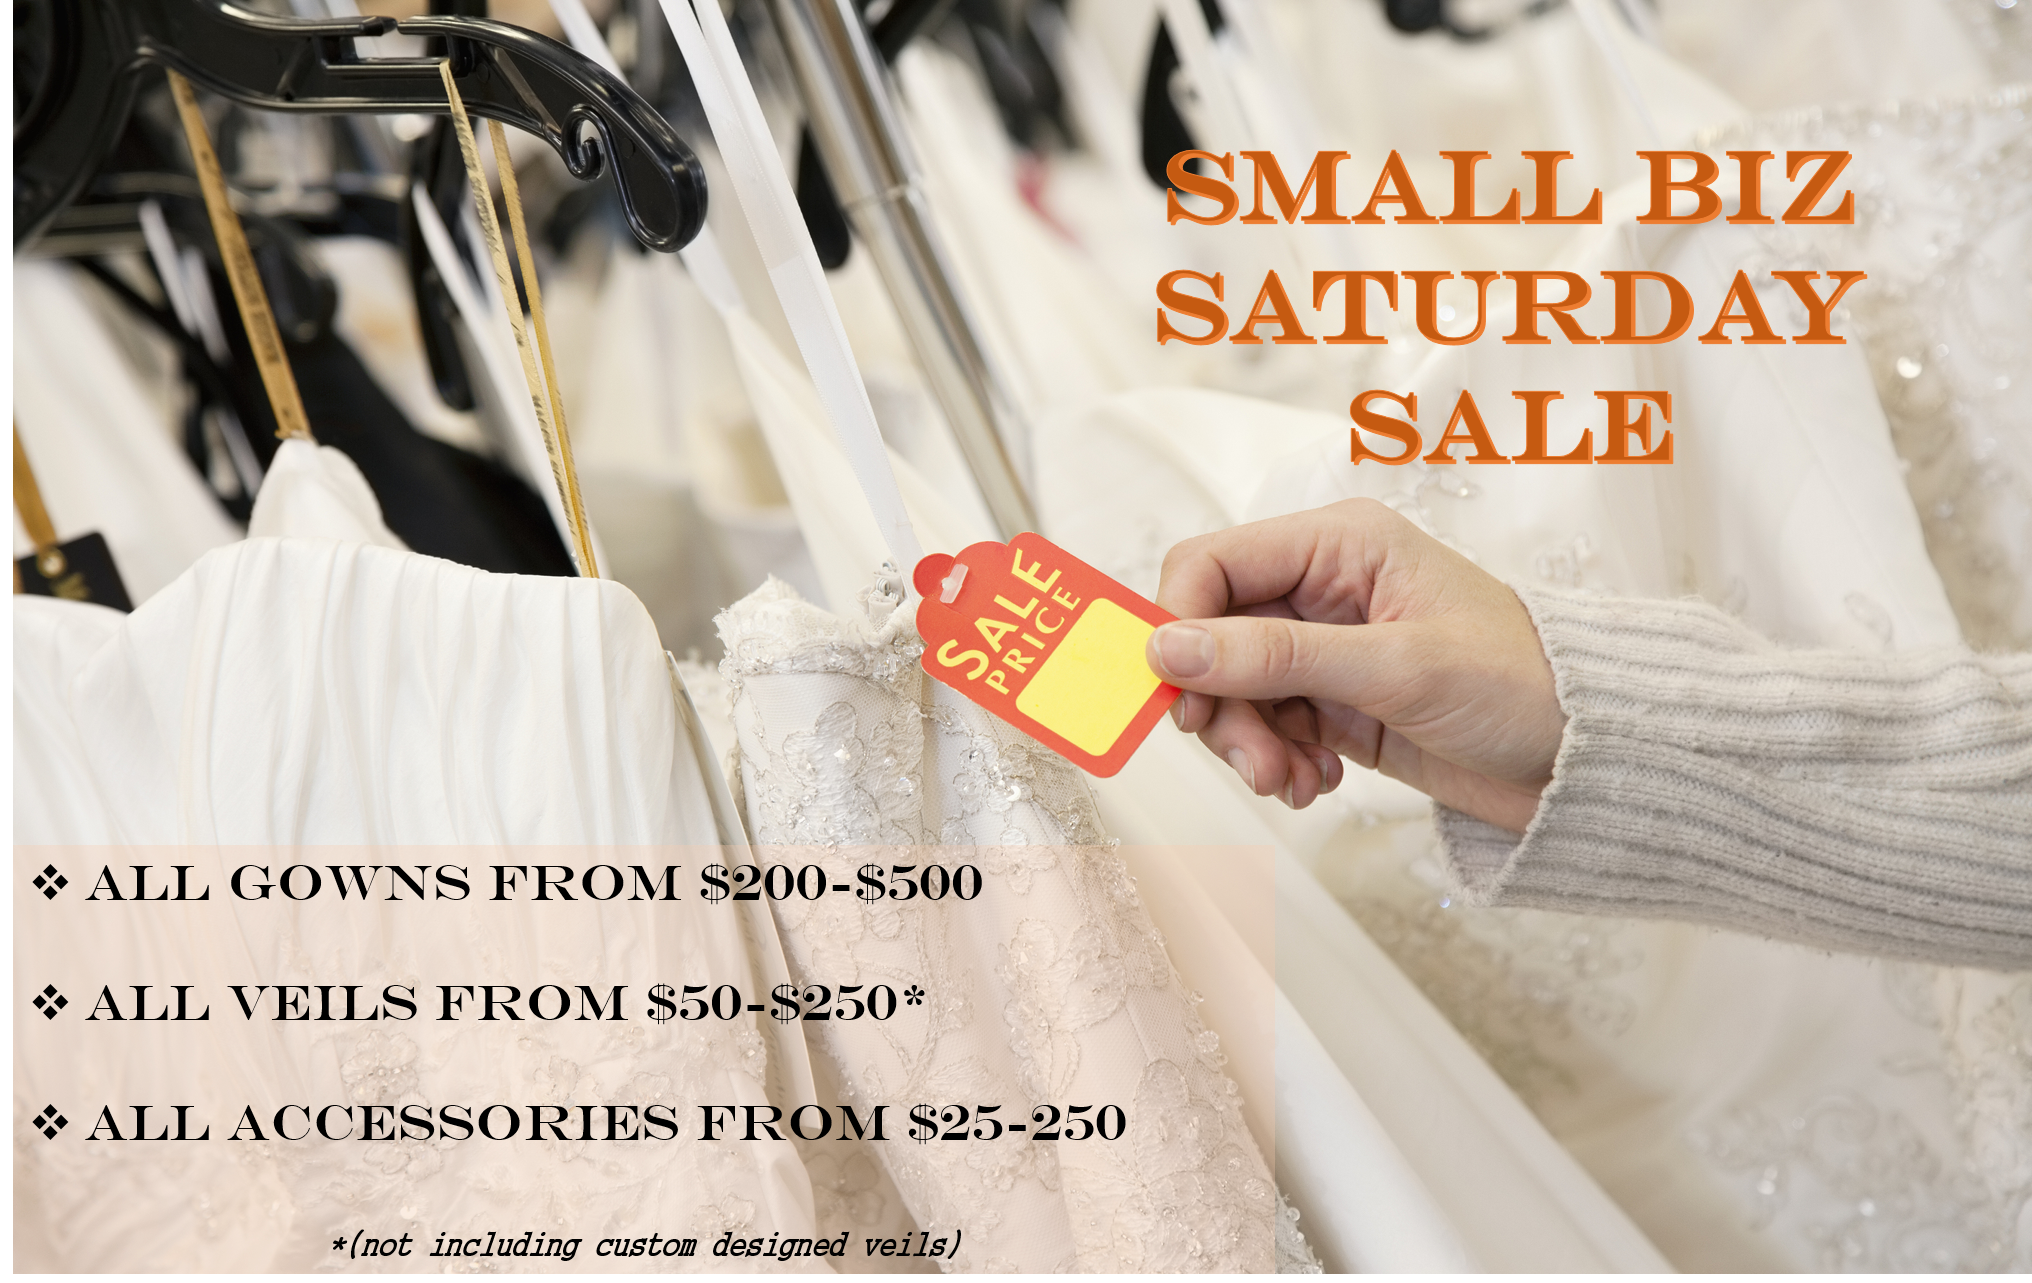 Small Biz Saturday Sale